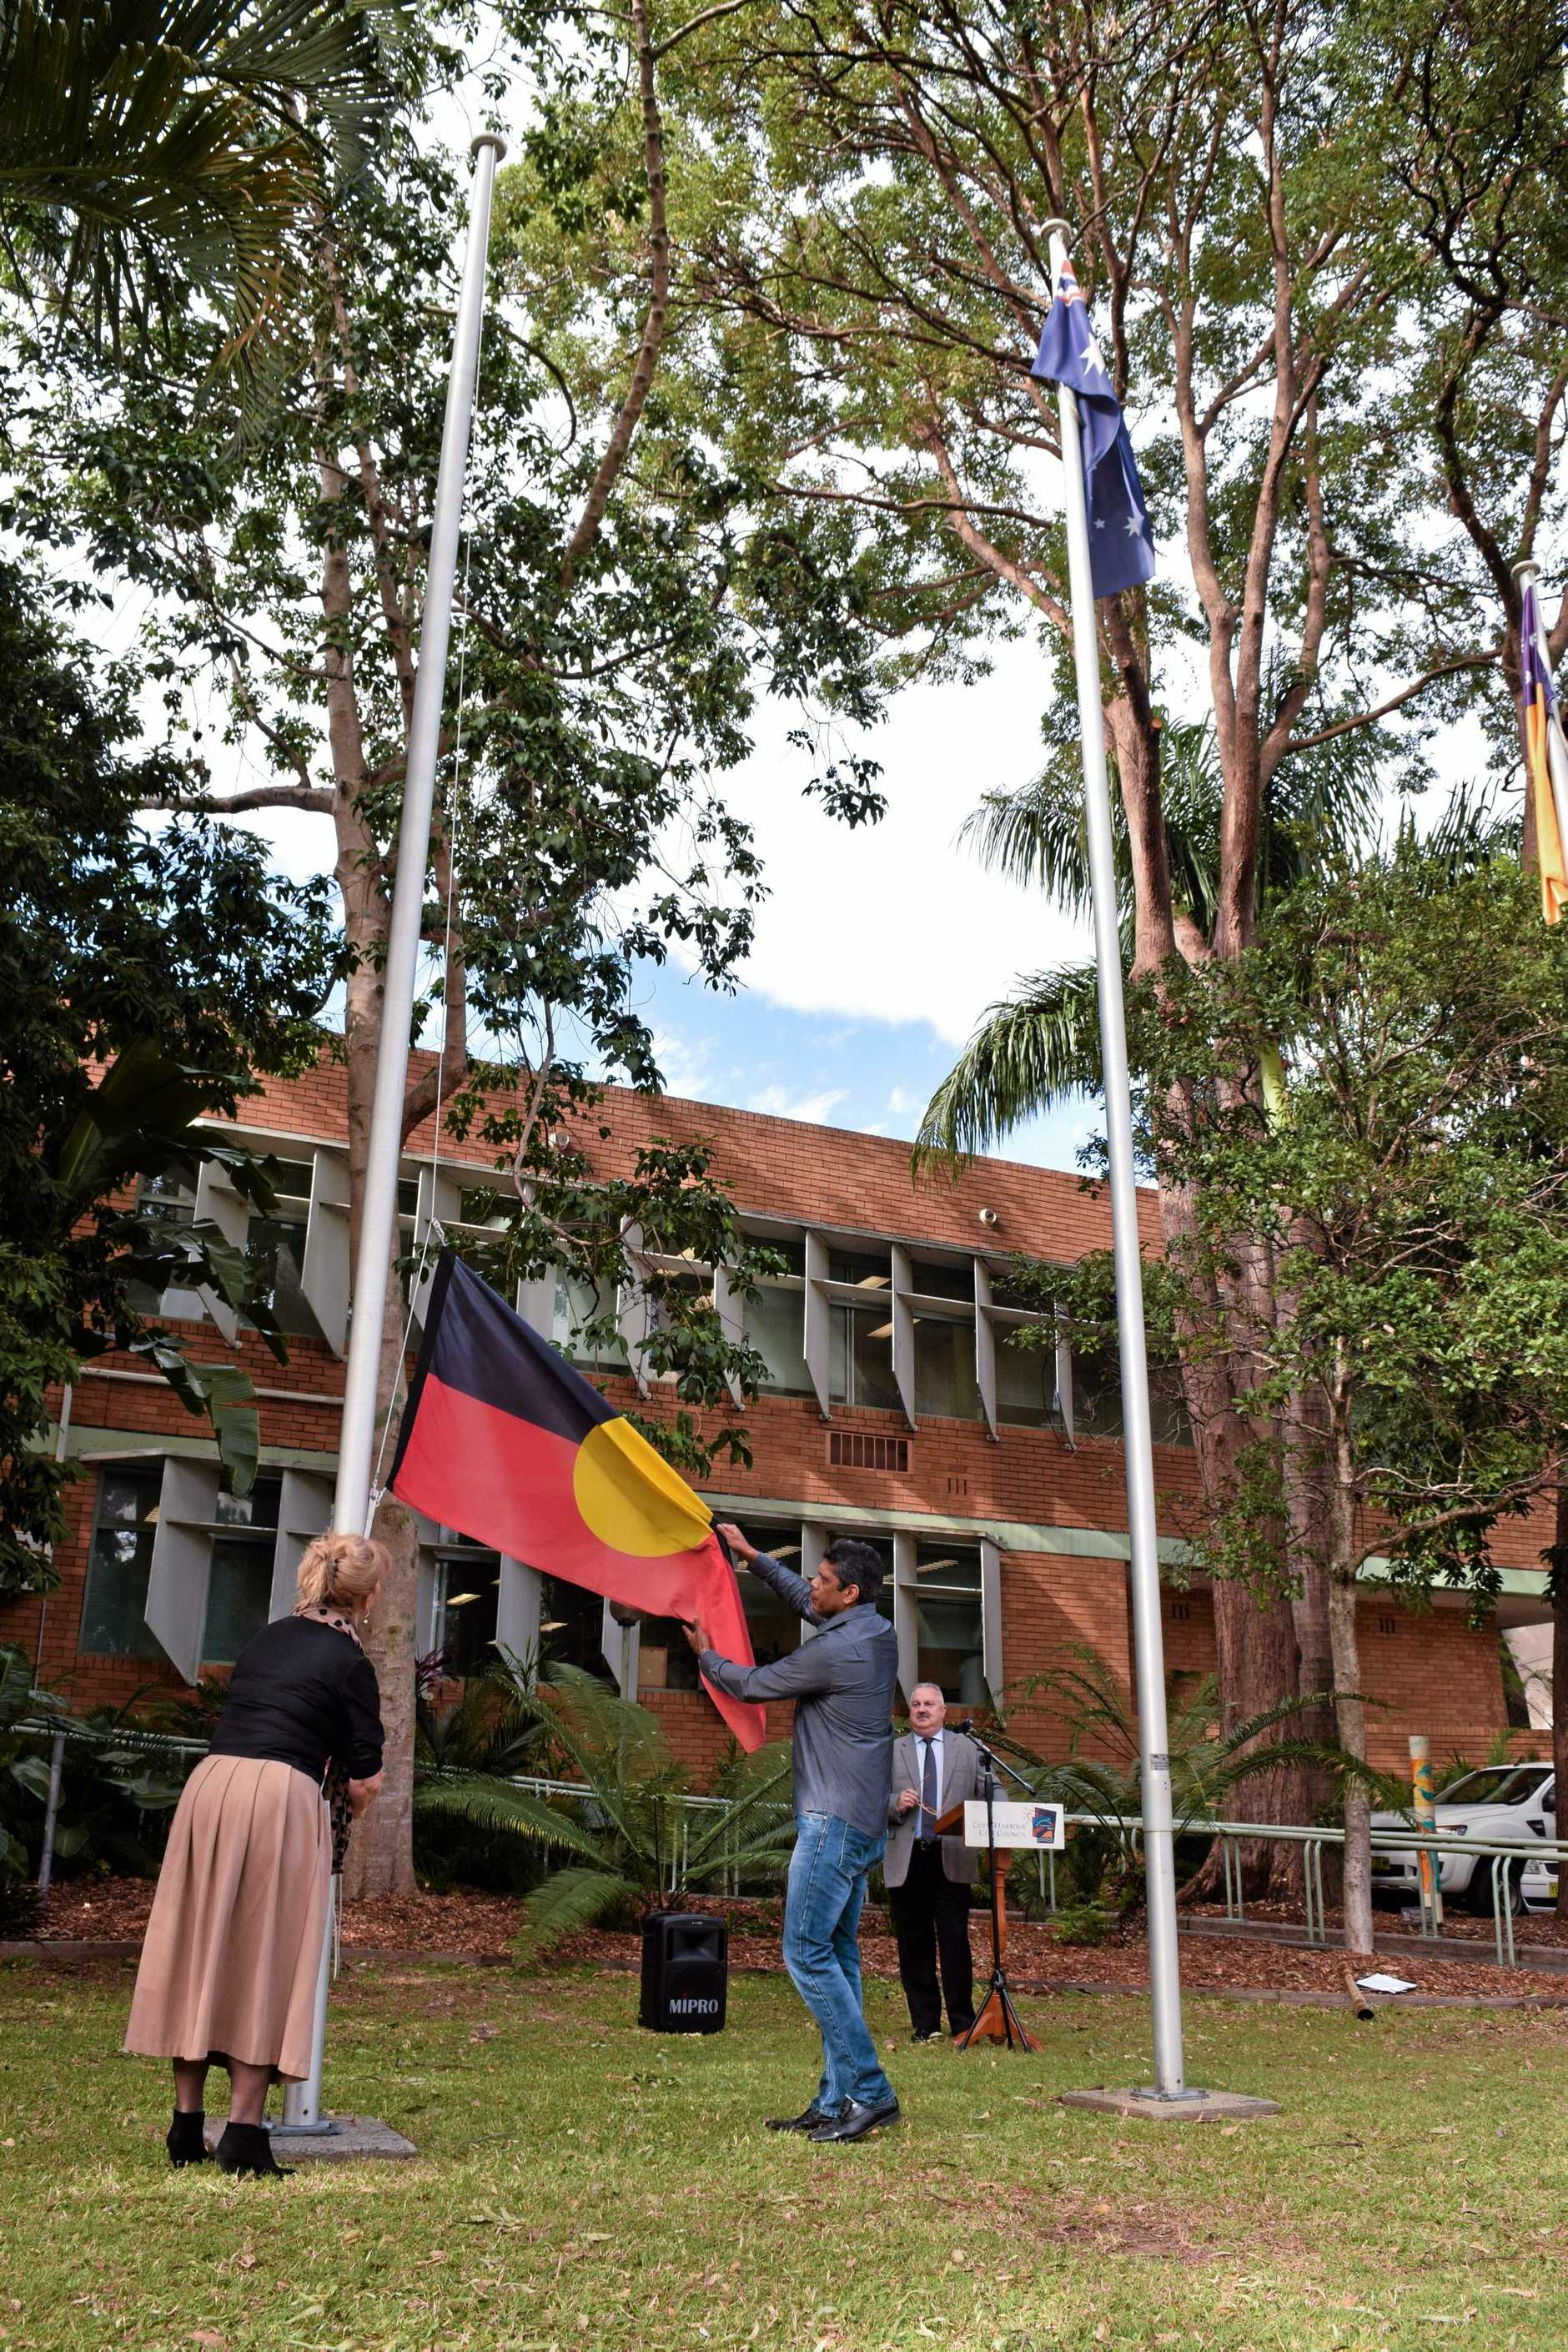 Mayor Denise Knight raising the Aboriginal flag with CHASE treasurer Lloyd Lynwood at the official opening of NAIDOC Week 2016 in Coffs Harbour.